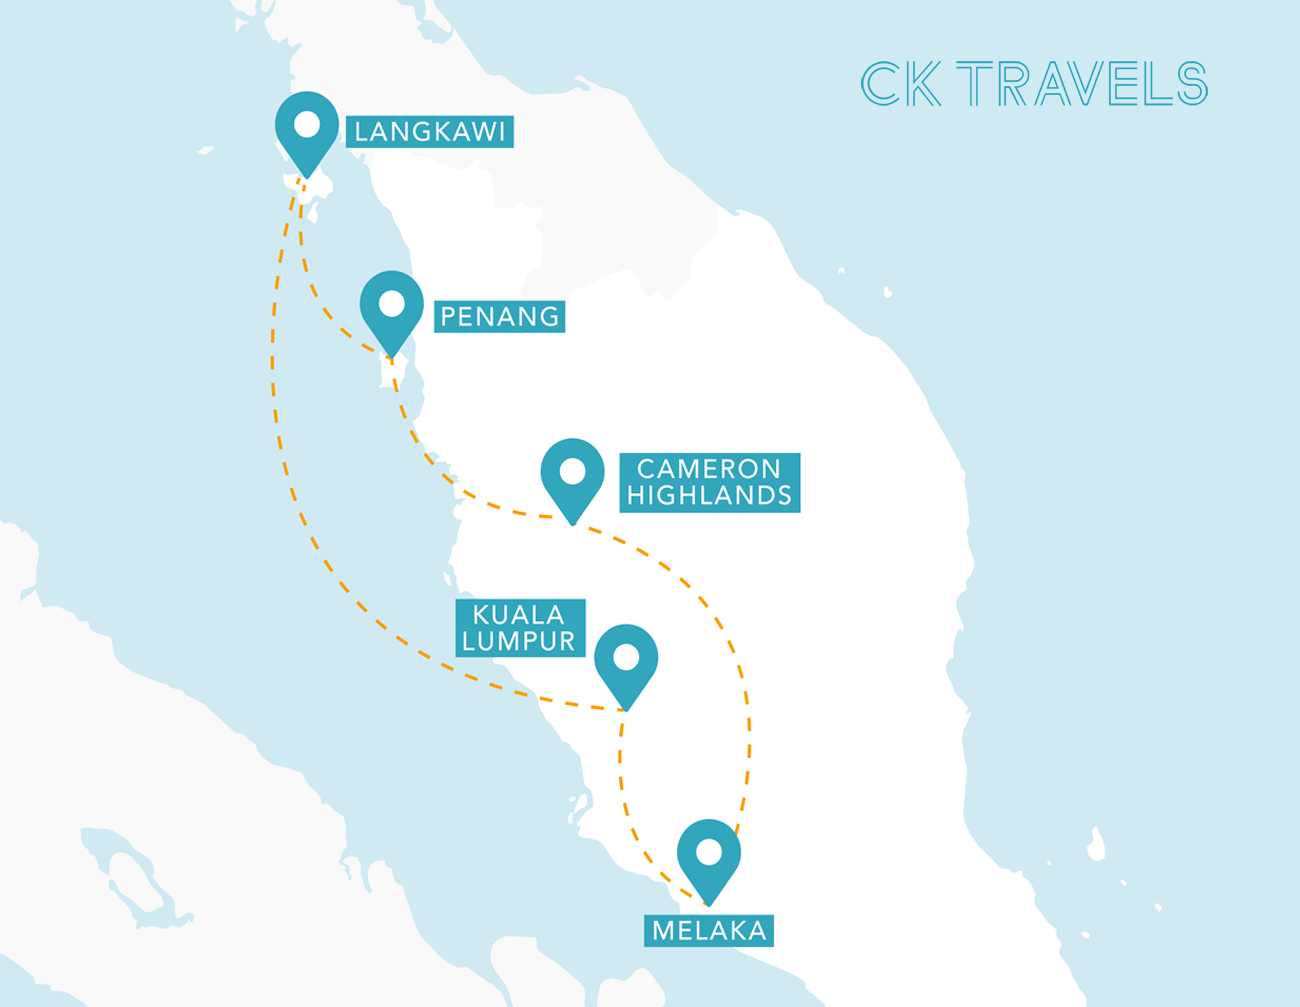 The best 2 week Malaysia itinerary and travel guide map